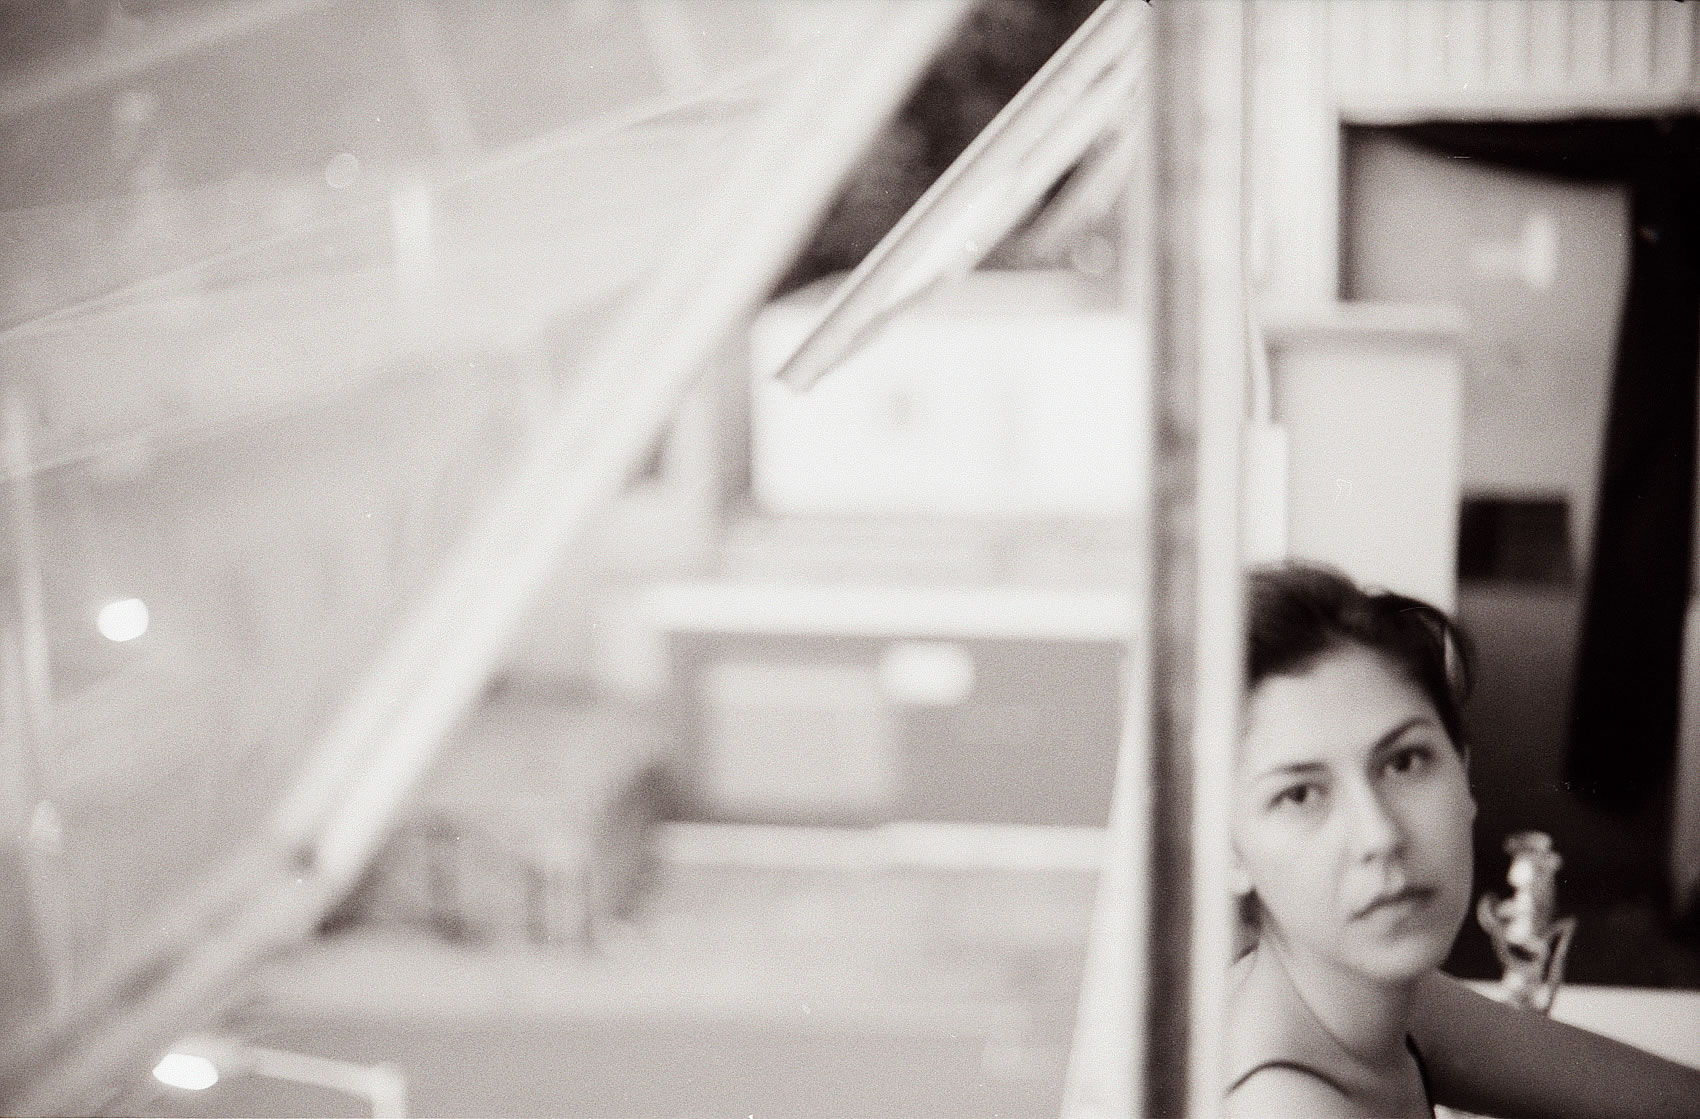 GIRL BY LARGE WINDOW